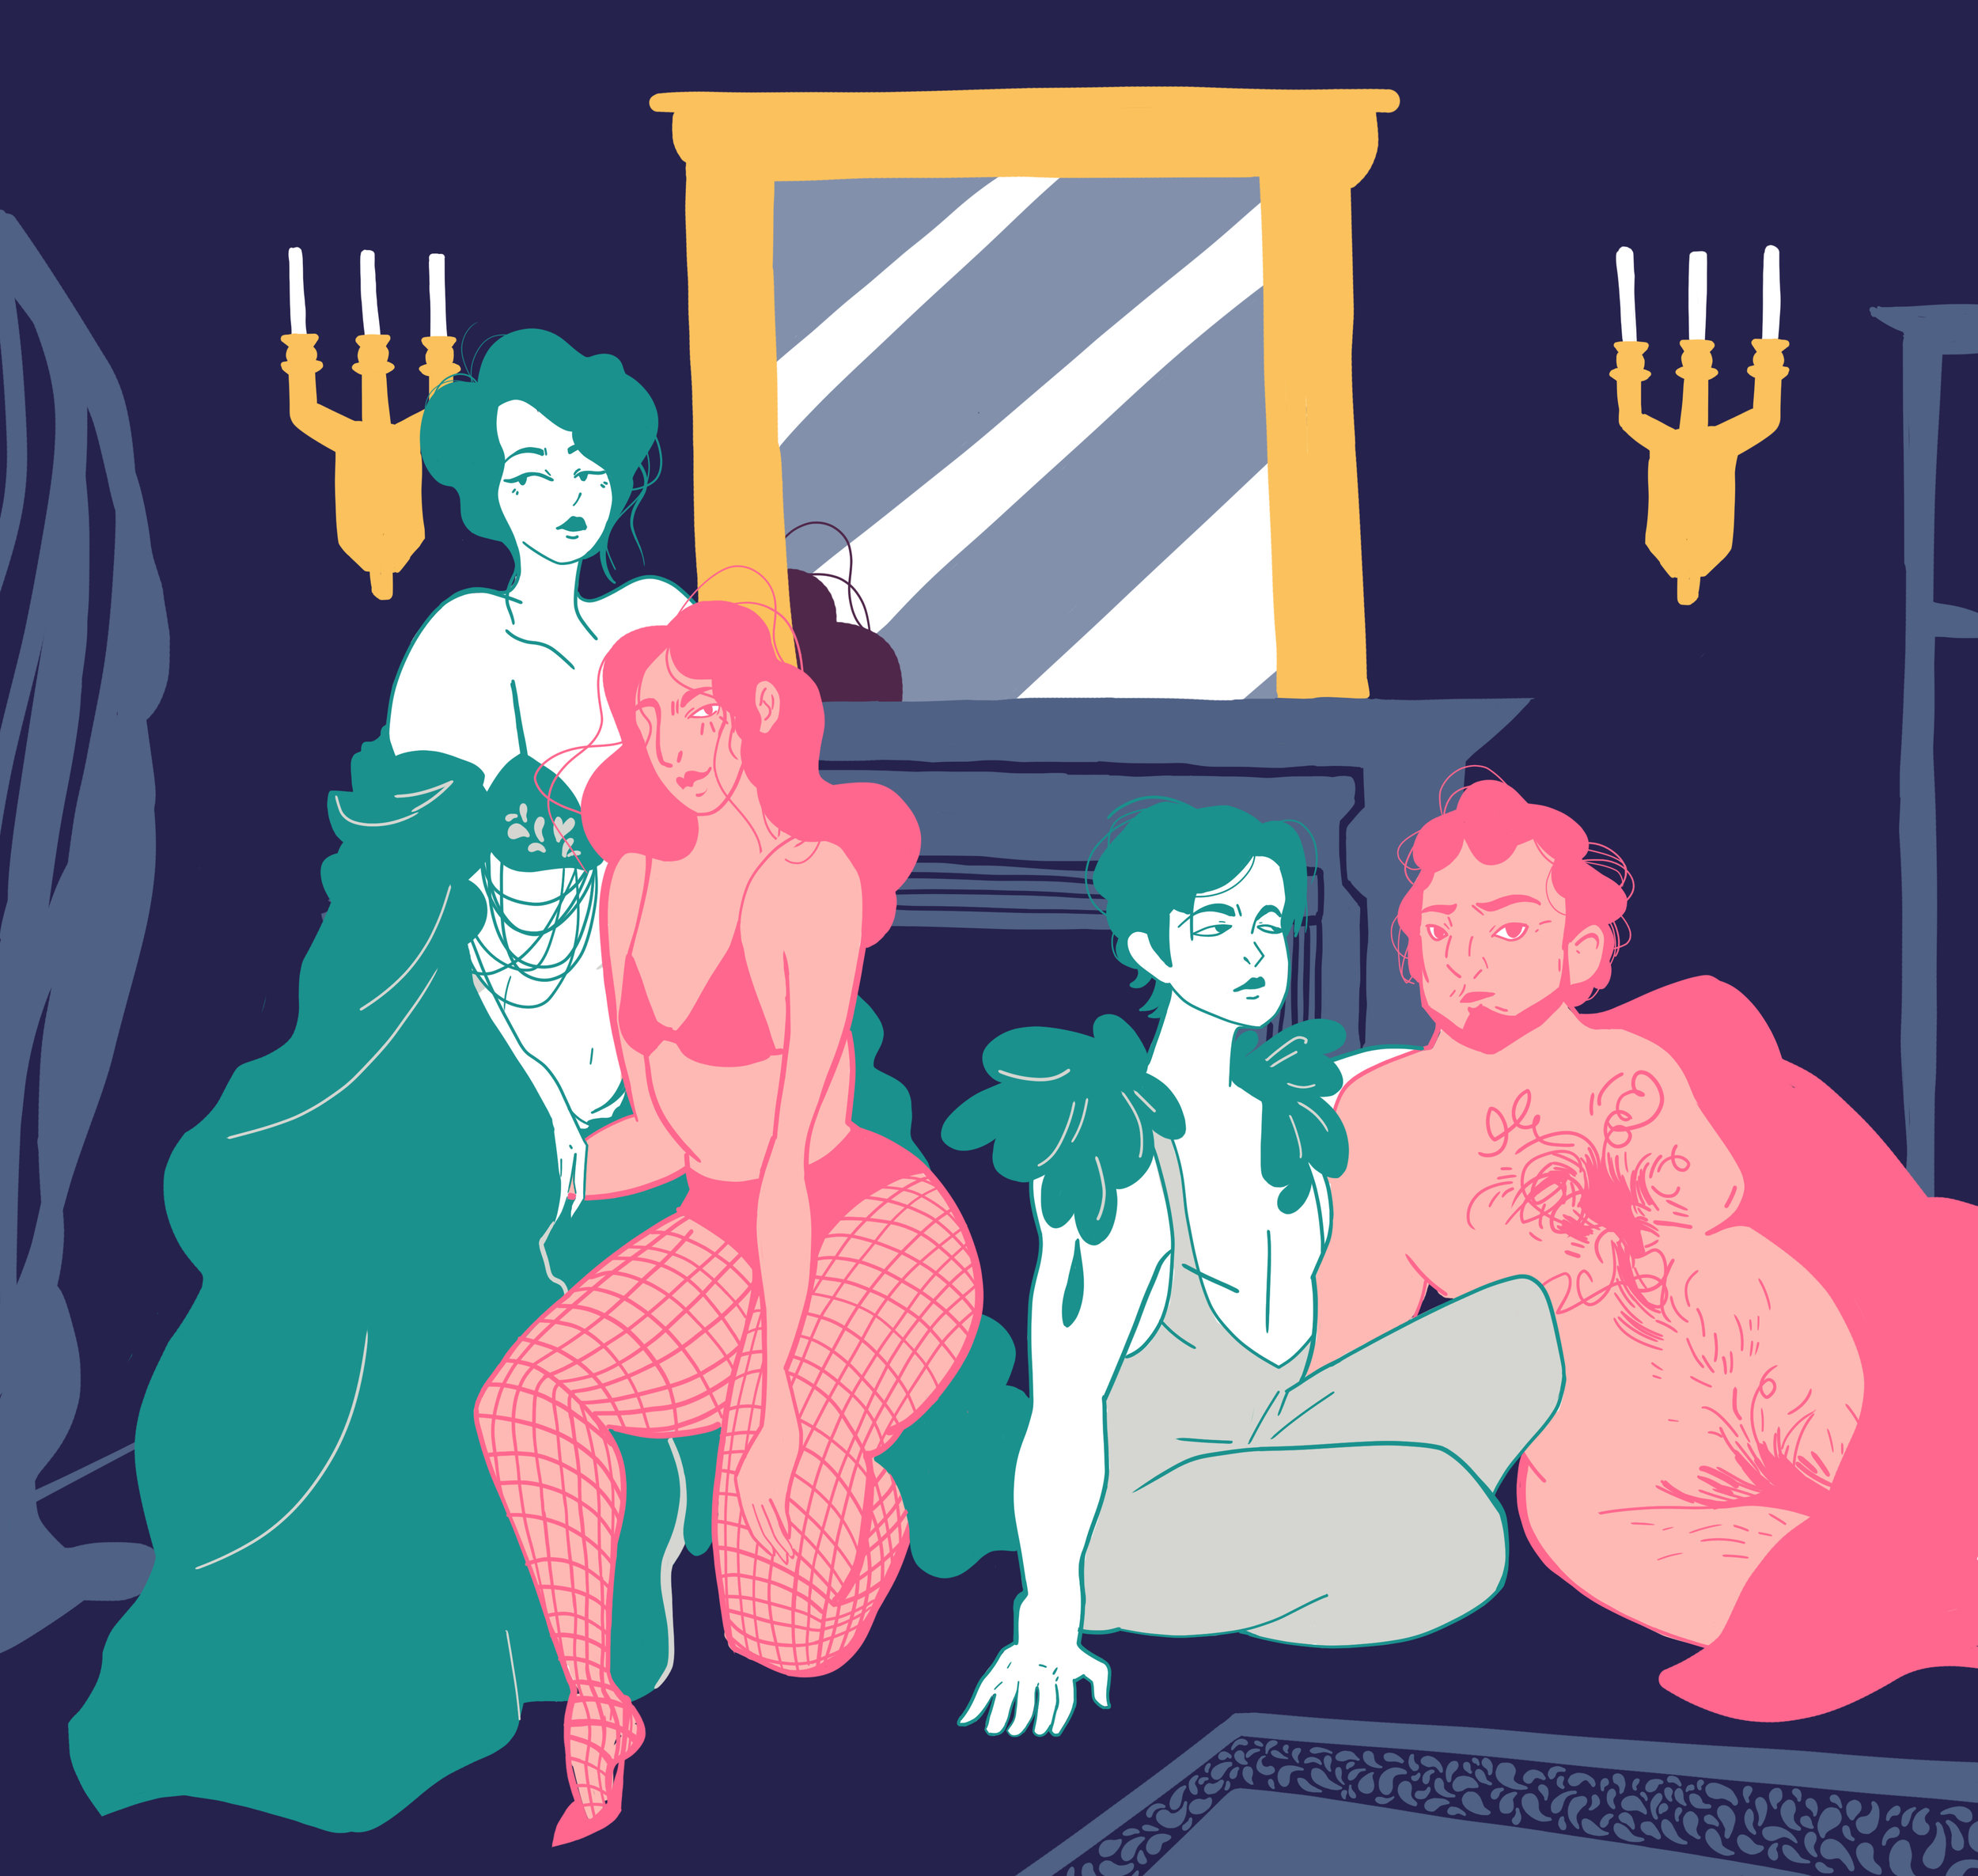 [Image description: an illustration of people seductively lounging in a luxurious interior]